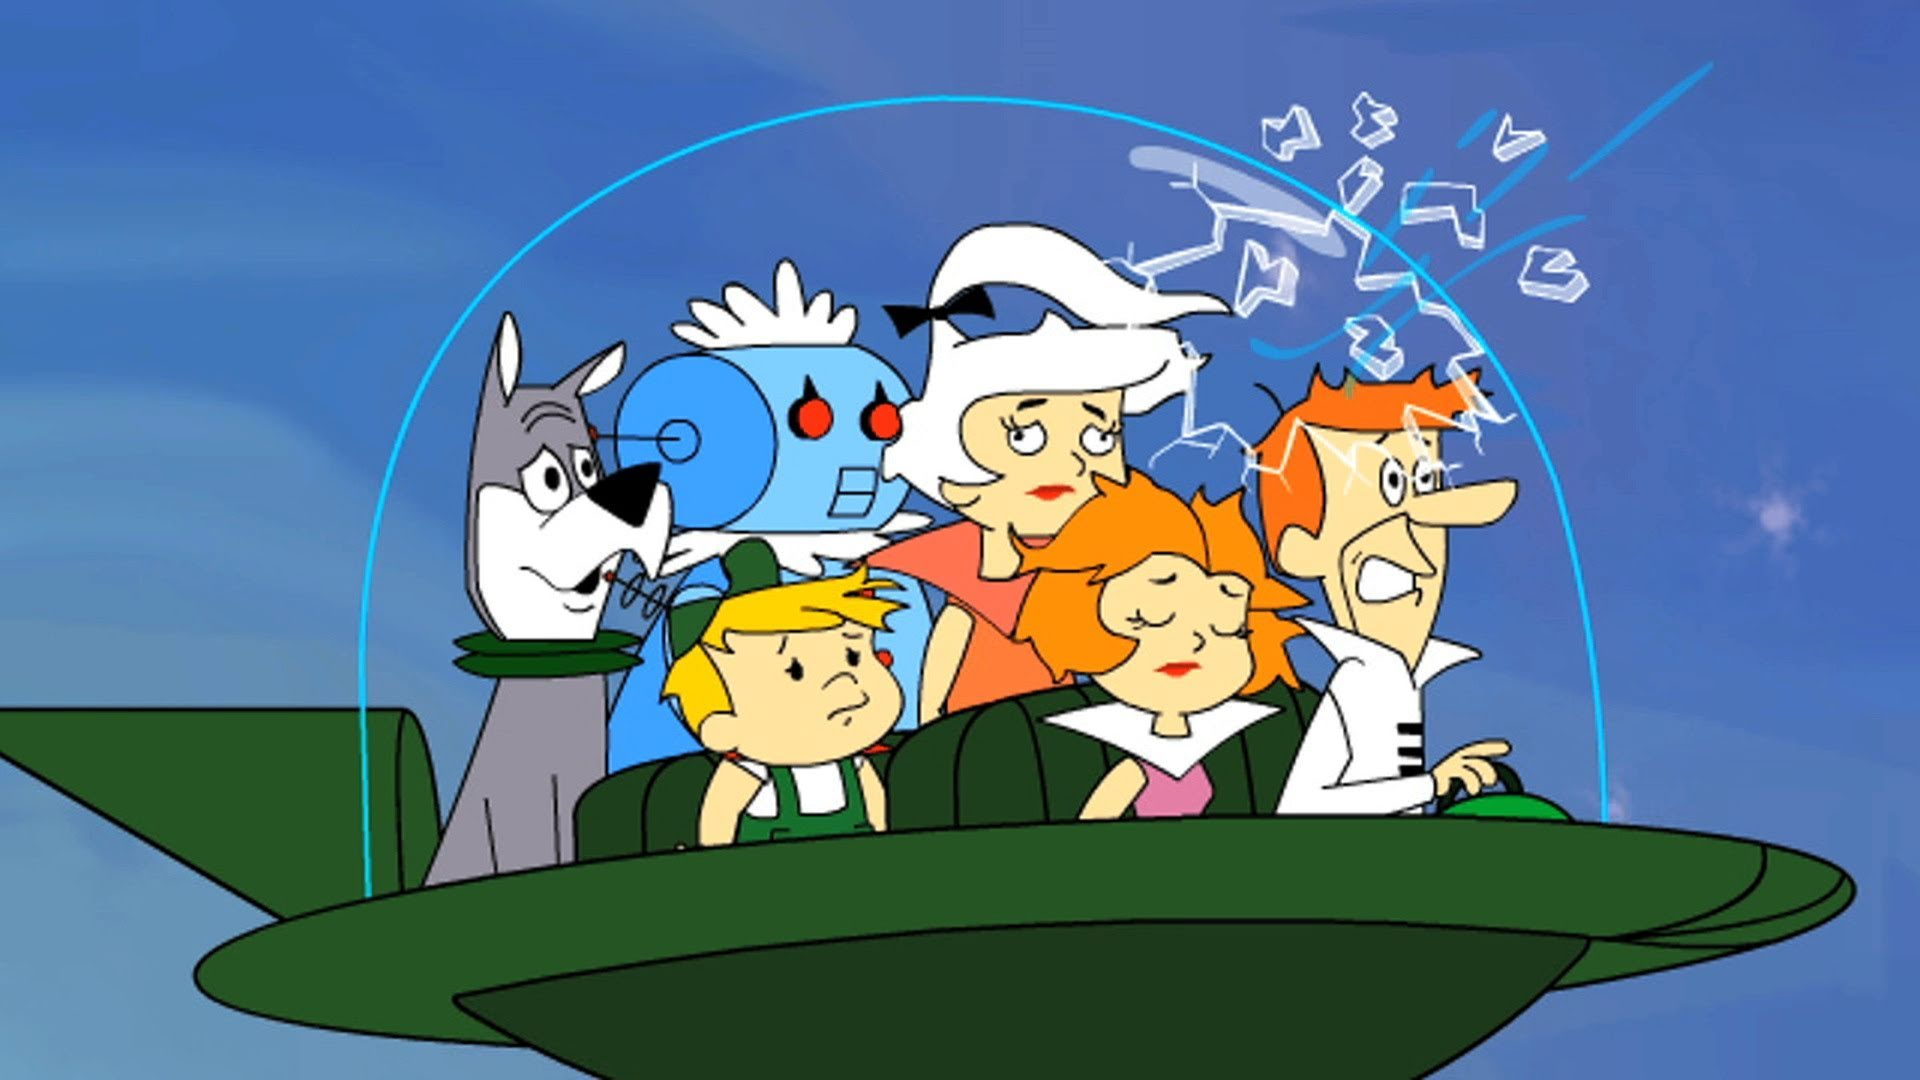 1920x1080 - The Jetsons Wallpapers 10